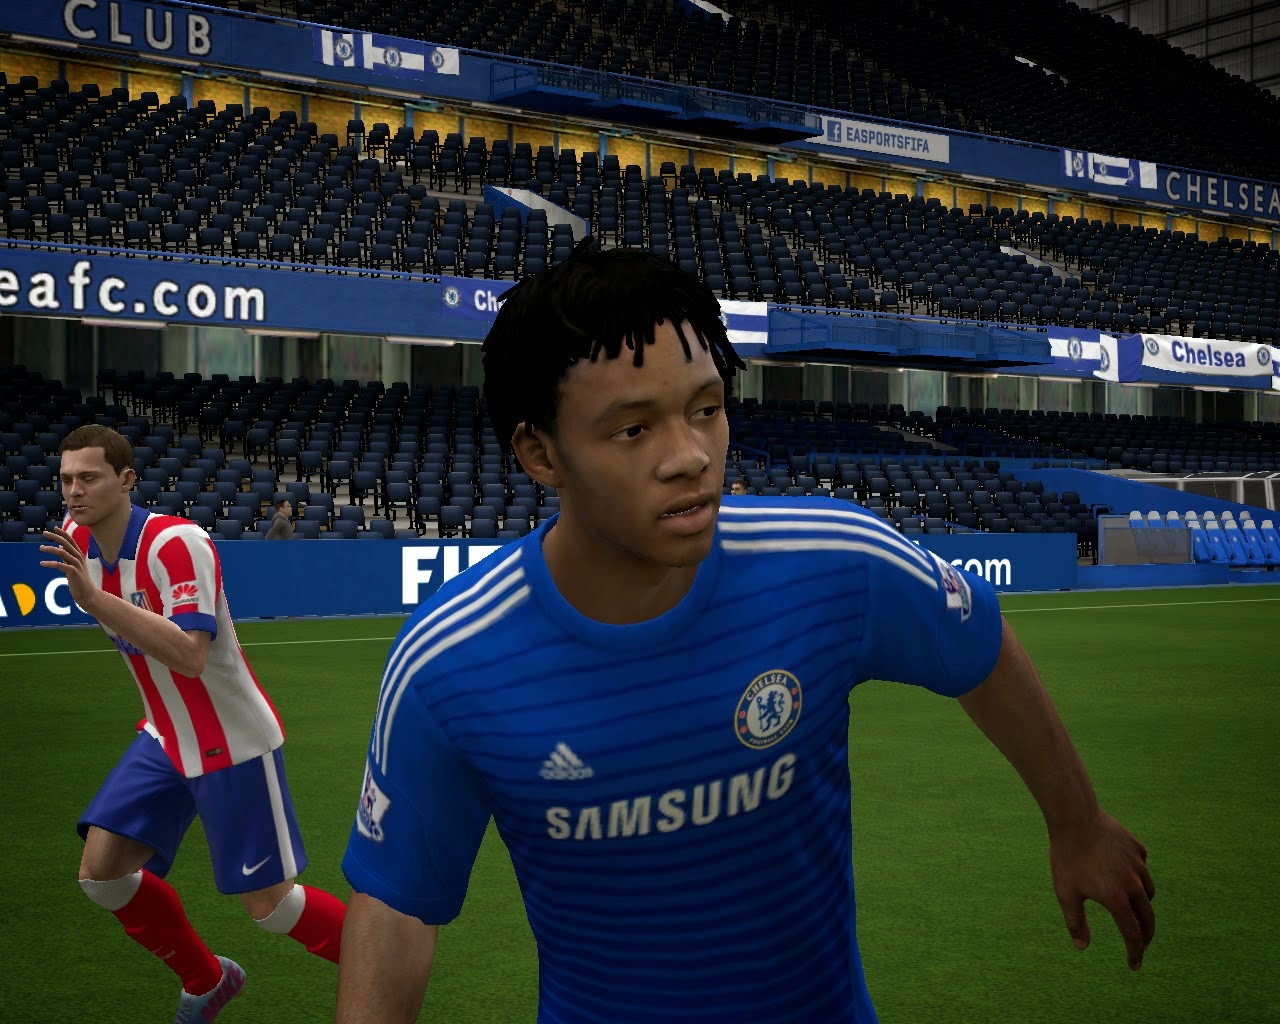 Fifa 14 and update